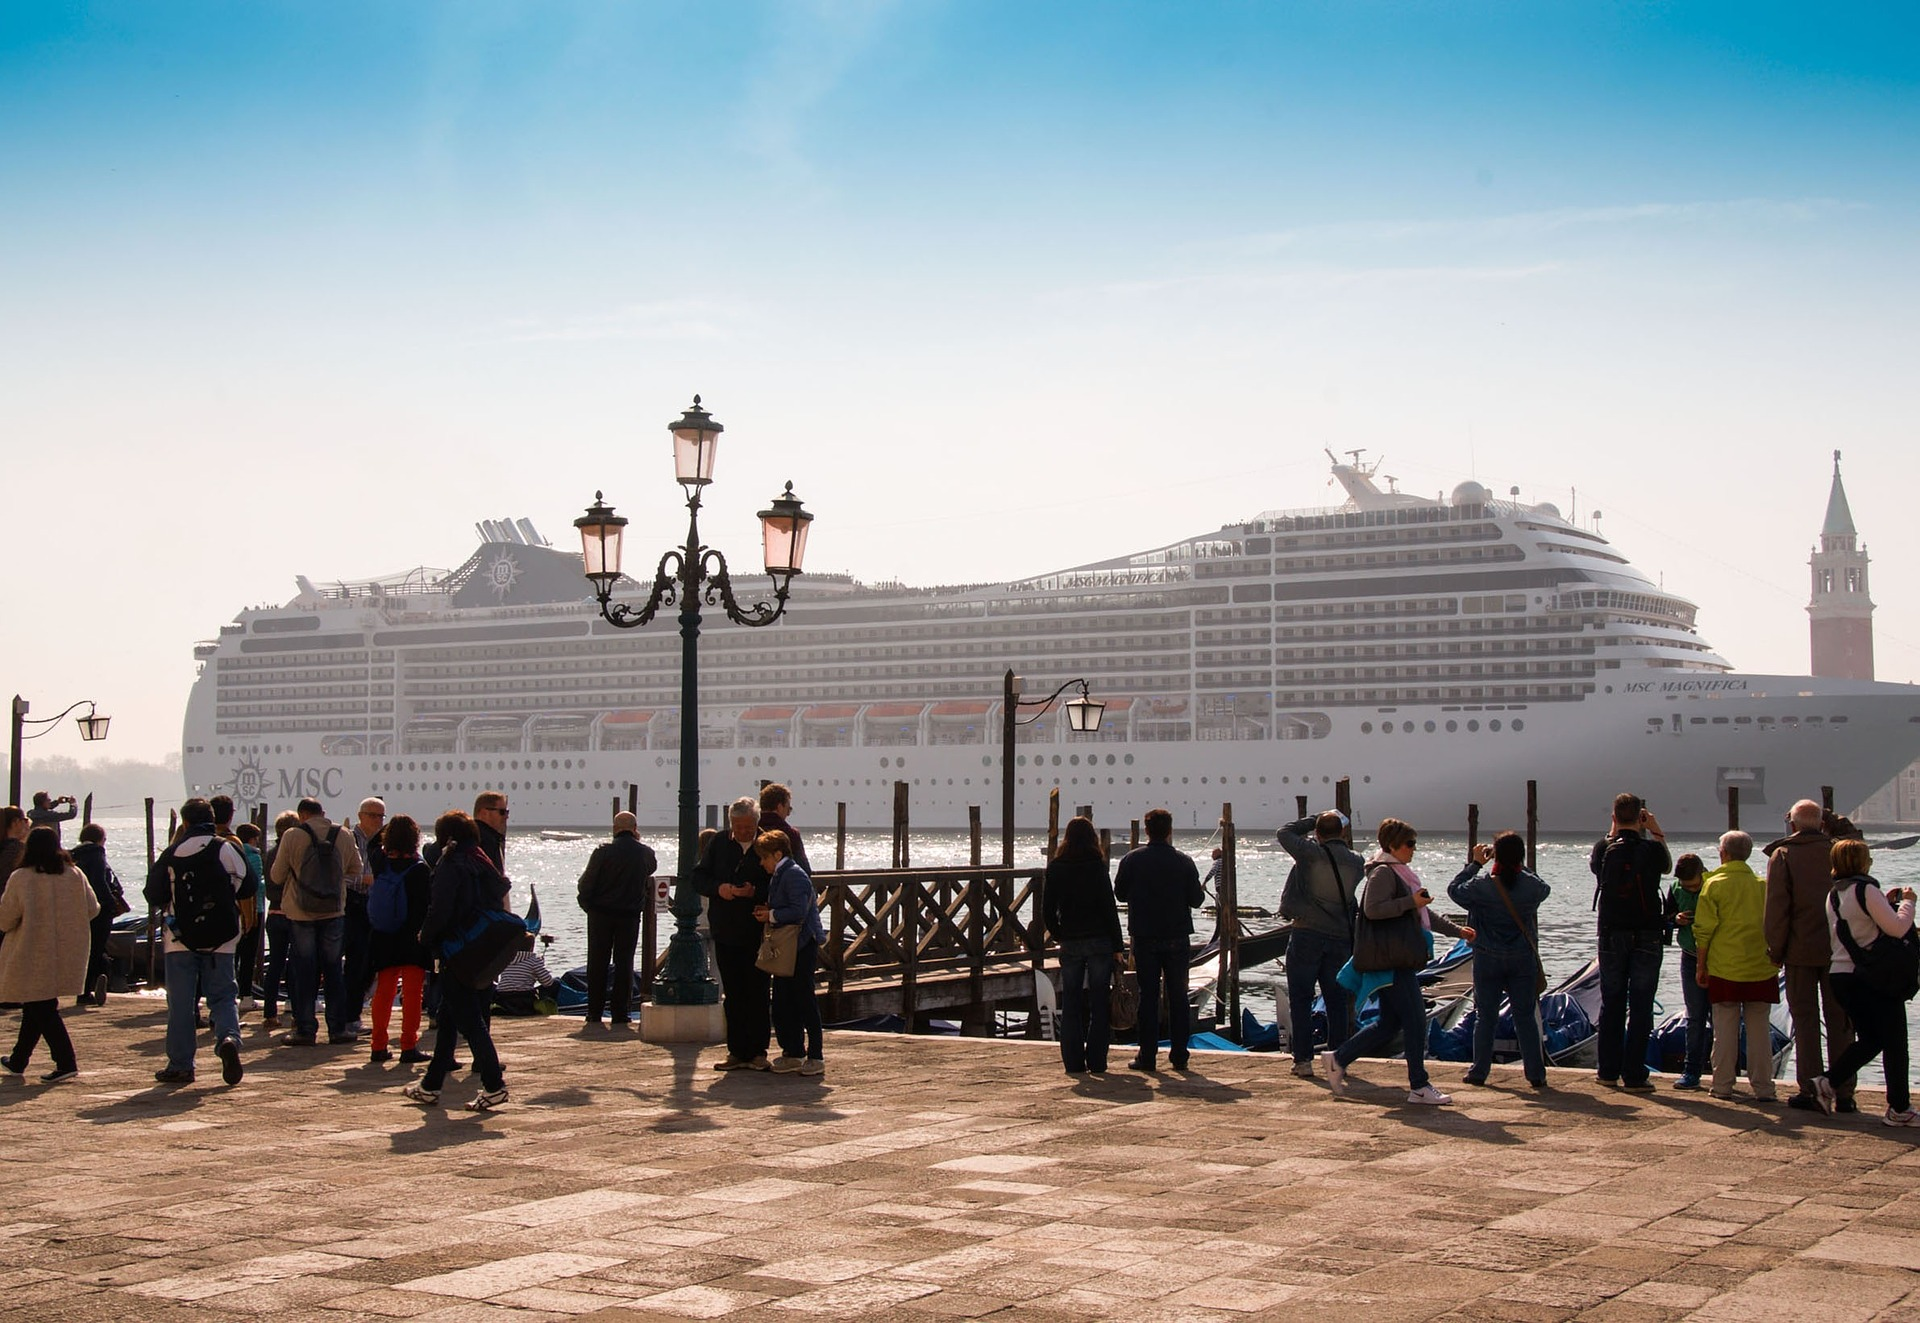 Venice, Italy and large cruise ship